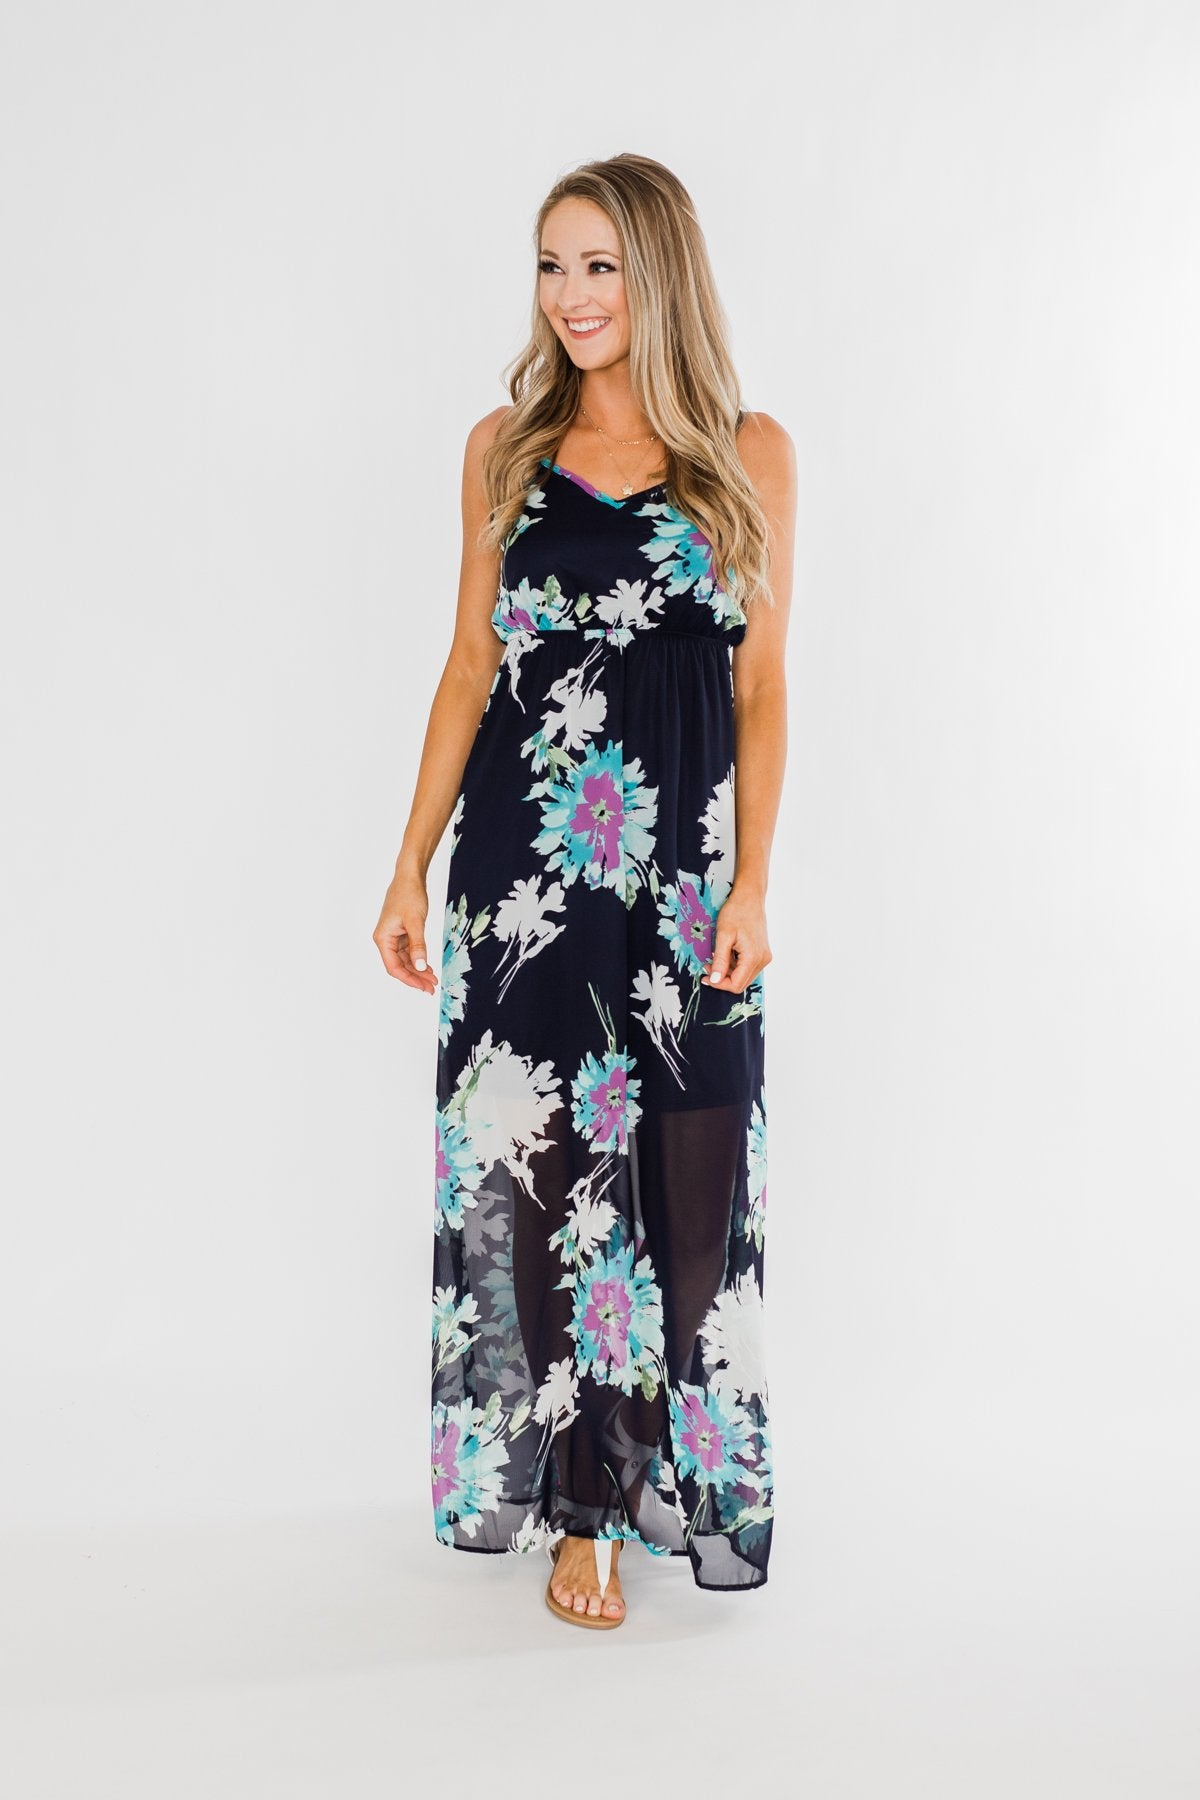 Finest Moment Navy Floral Maxi Dress